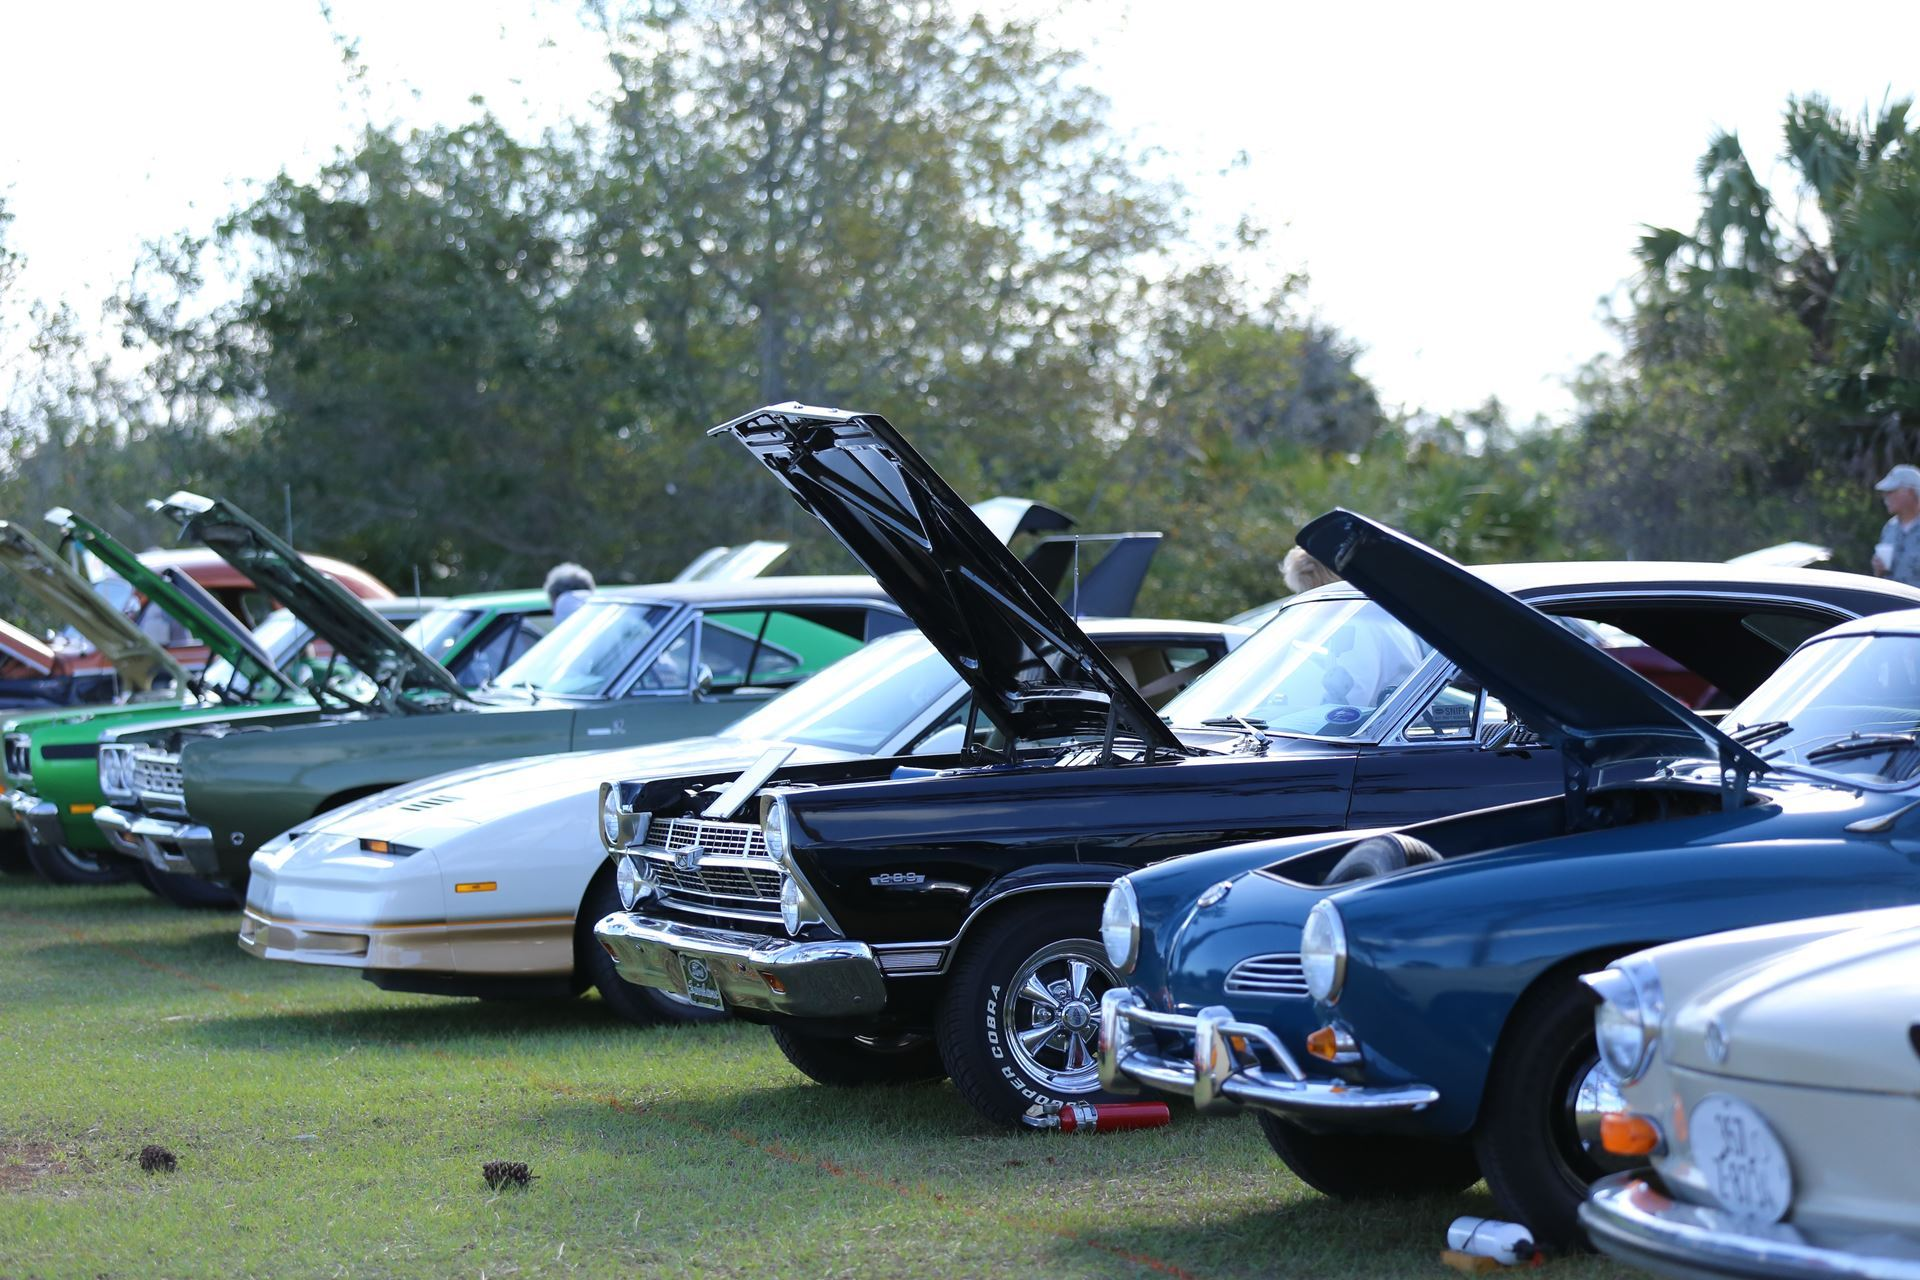 Antique Automobile Club Of Cape Canaveral Show - Wickham park car show melbourne fl